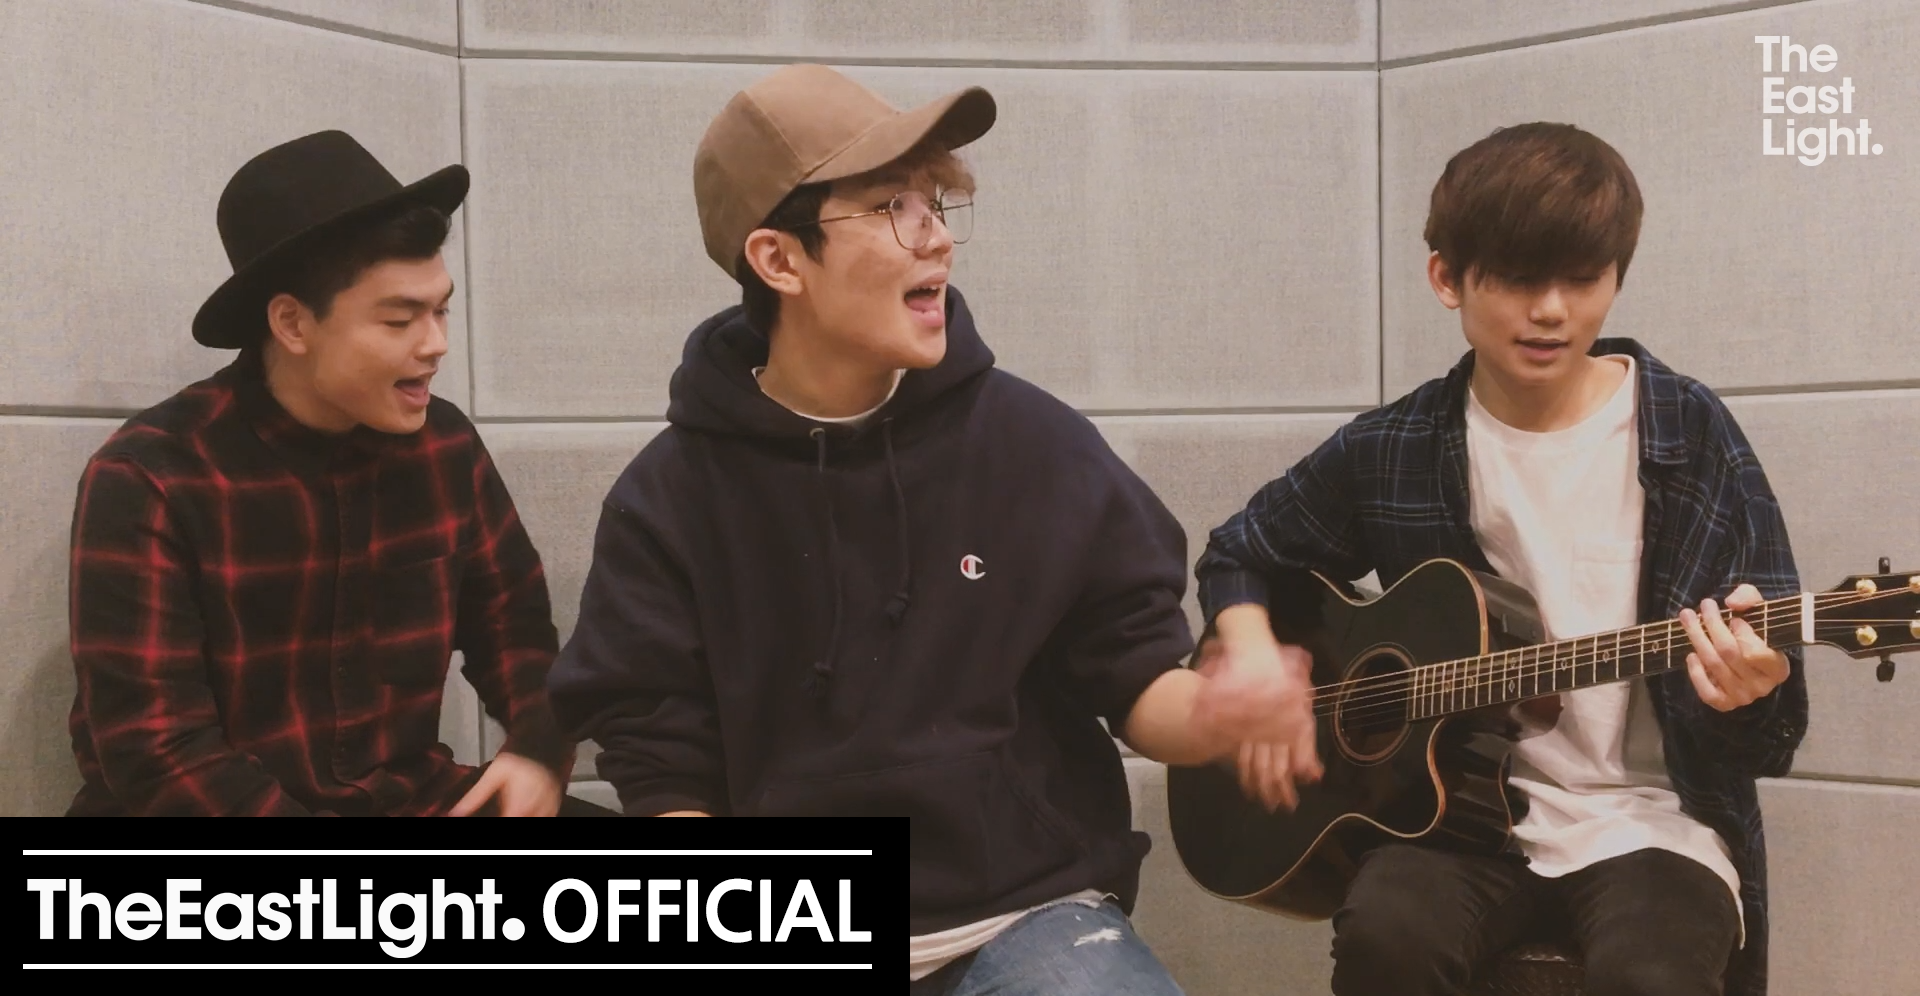 TheEastLight. Seokchel & Eunsung & Junwook - The Song (Zion. T Cover)